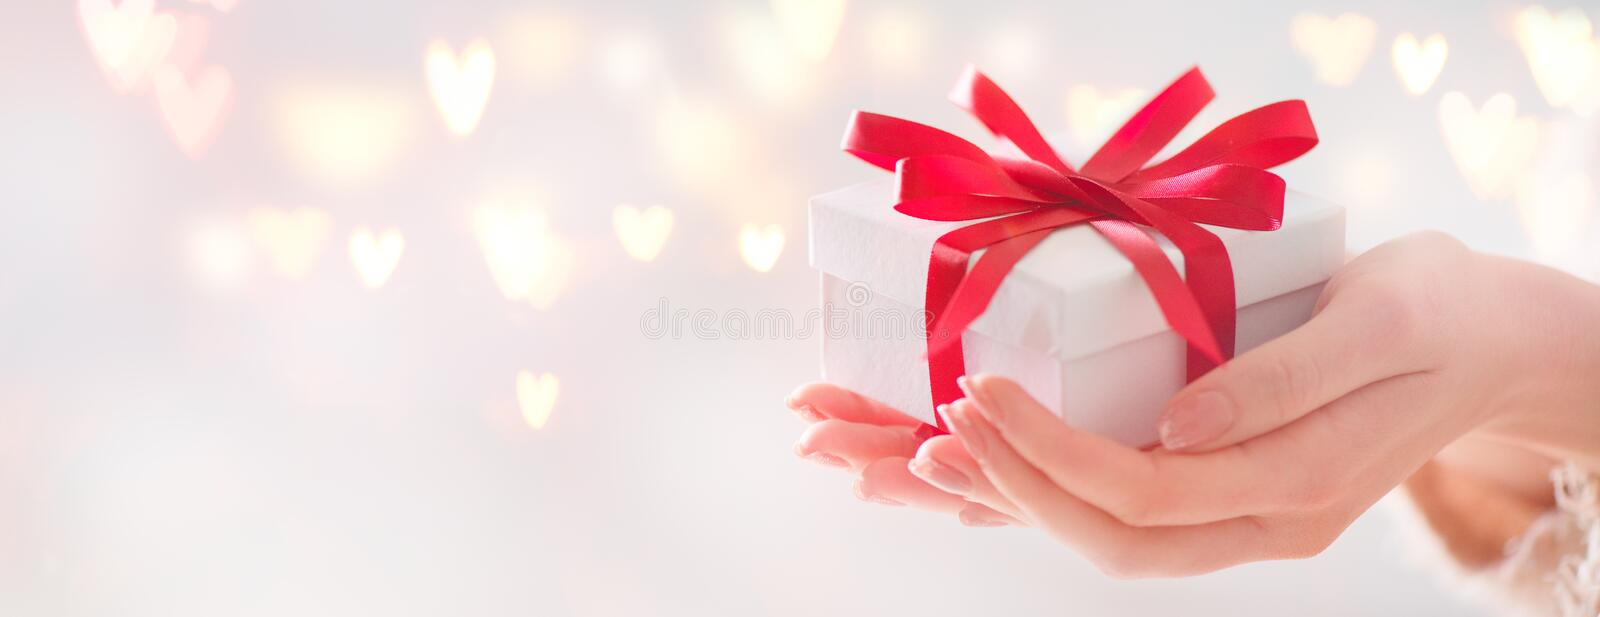 Valentine`s Day. Woman holding gift box with red bow. Over holiday background stock photos